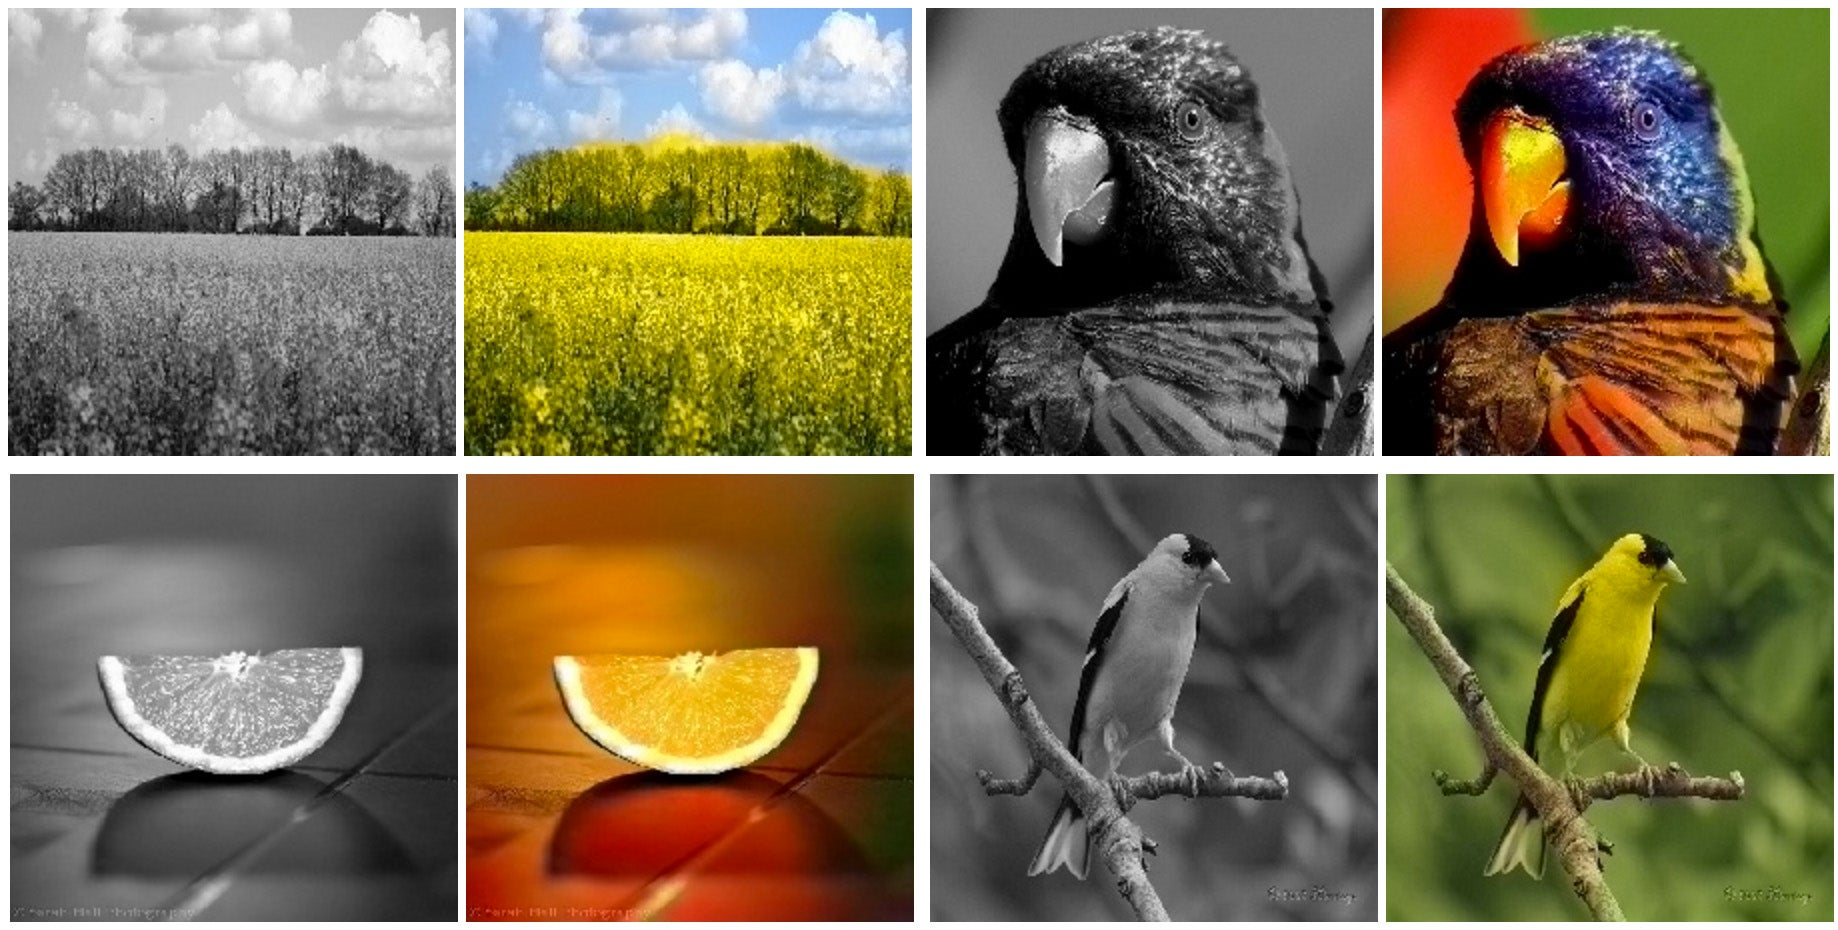 This Software Creates Vivid Colour Pictures From Black-and-White Photos